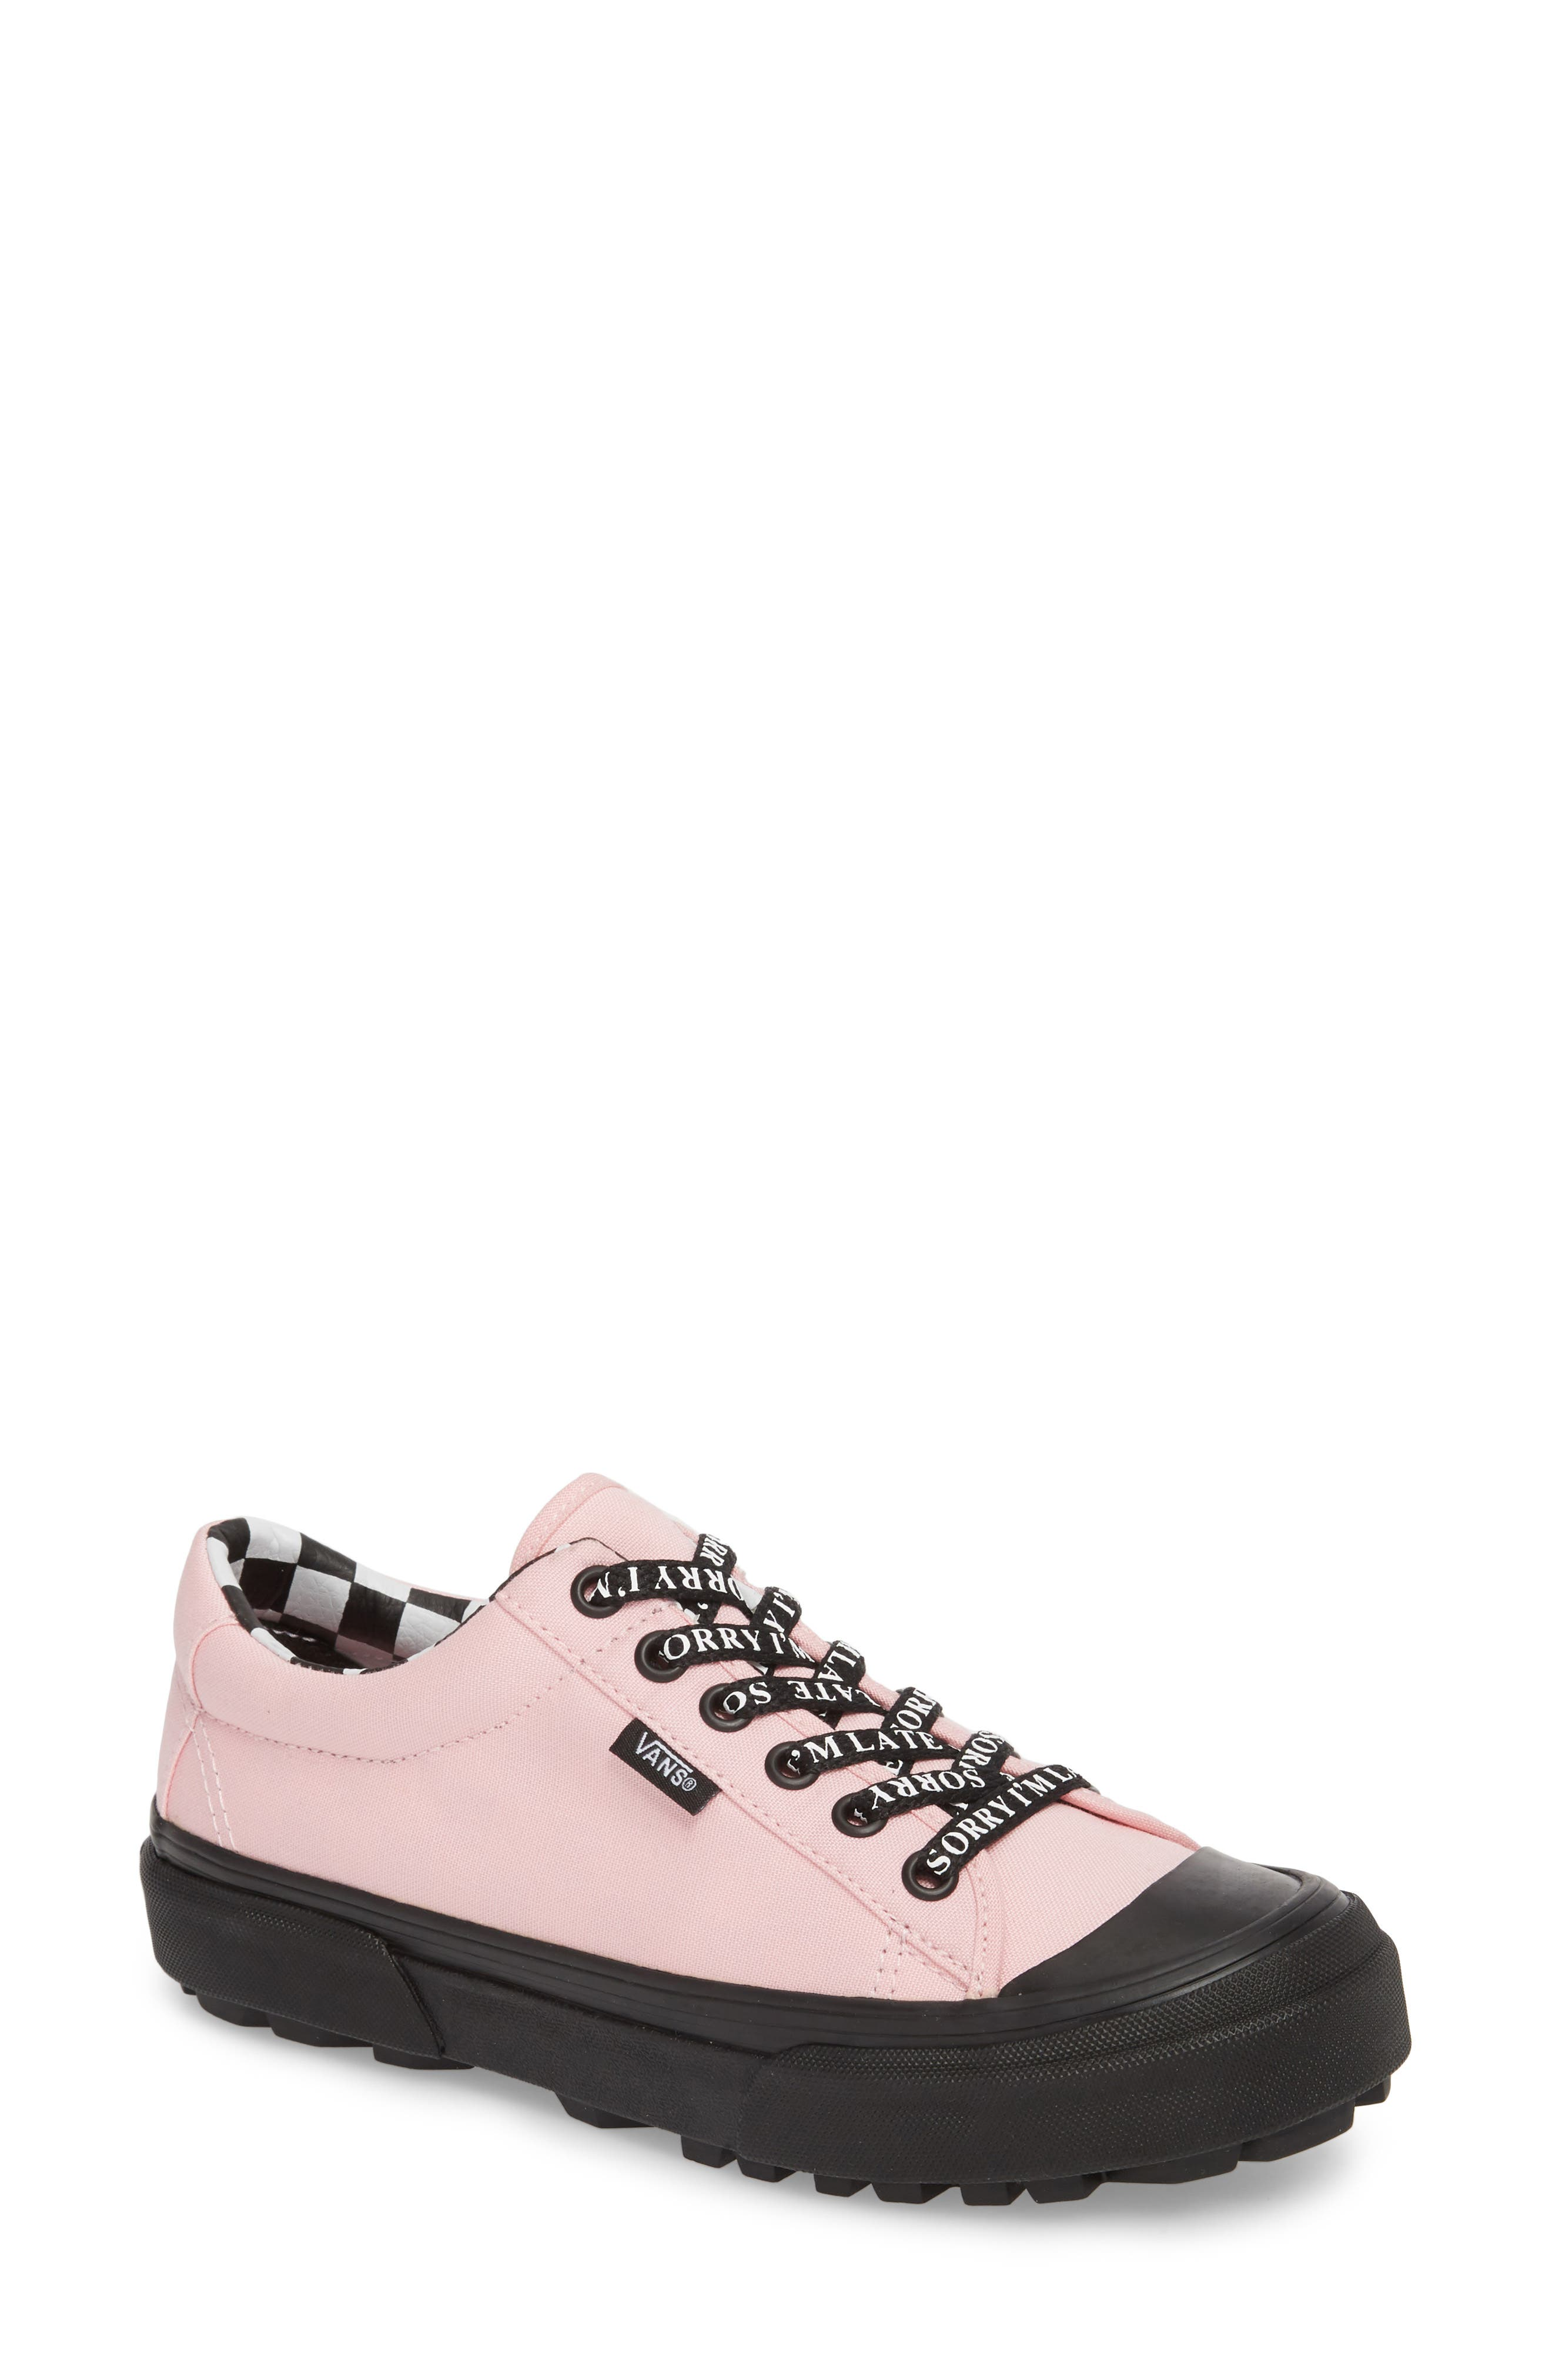 x Lazy Oaf Style 29 Low Top Sneaker,                             Main thumbnail 1, color,